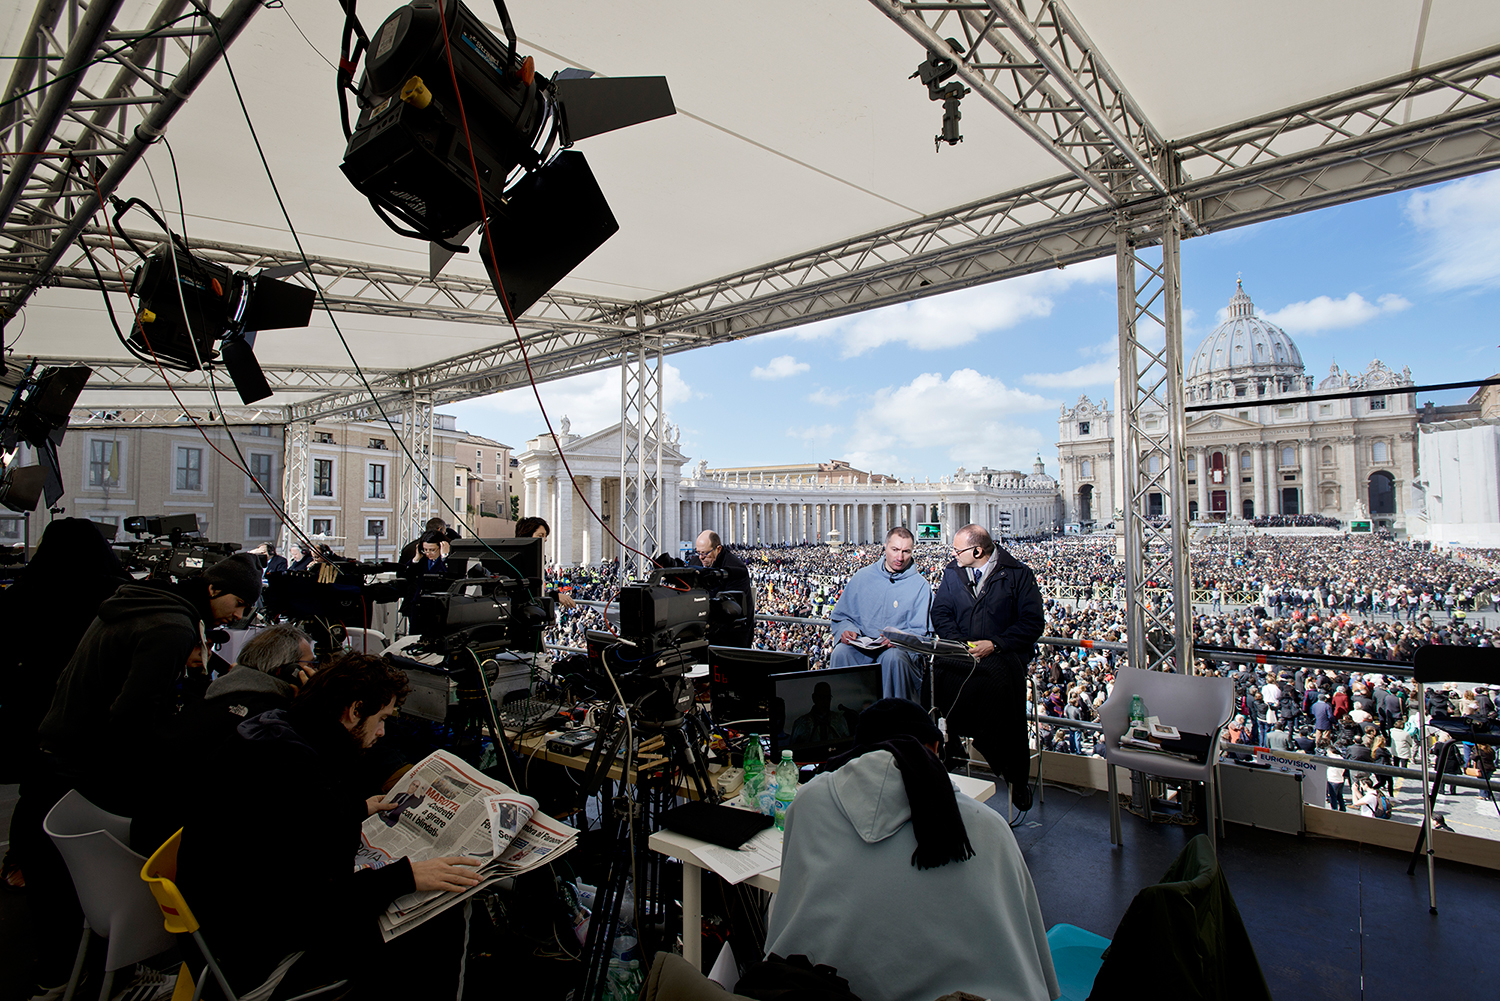 During the mass for the beginning of the Petrine ministry of Pope Francis.